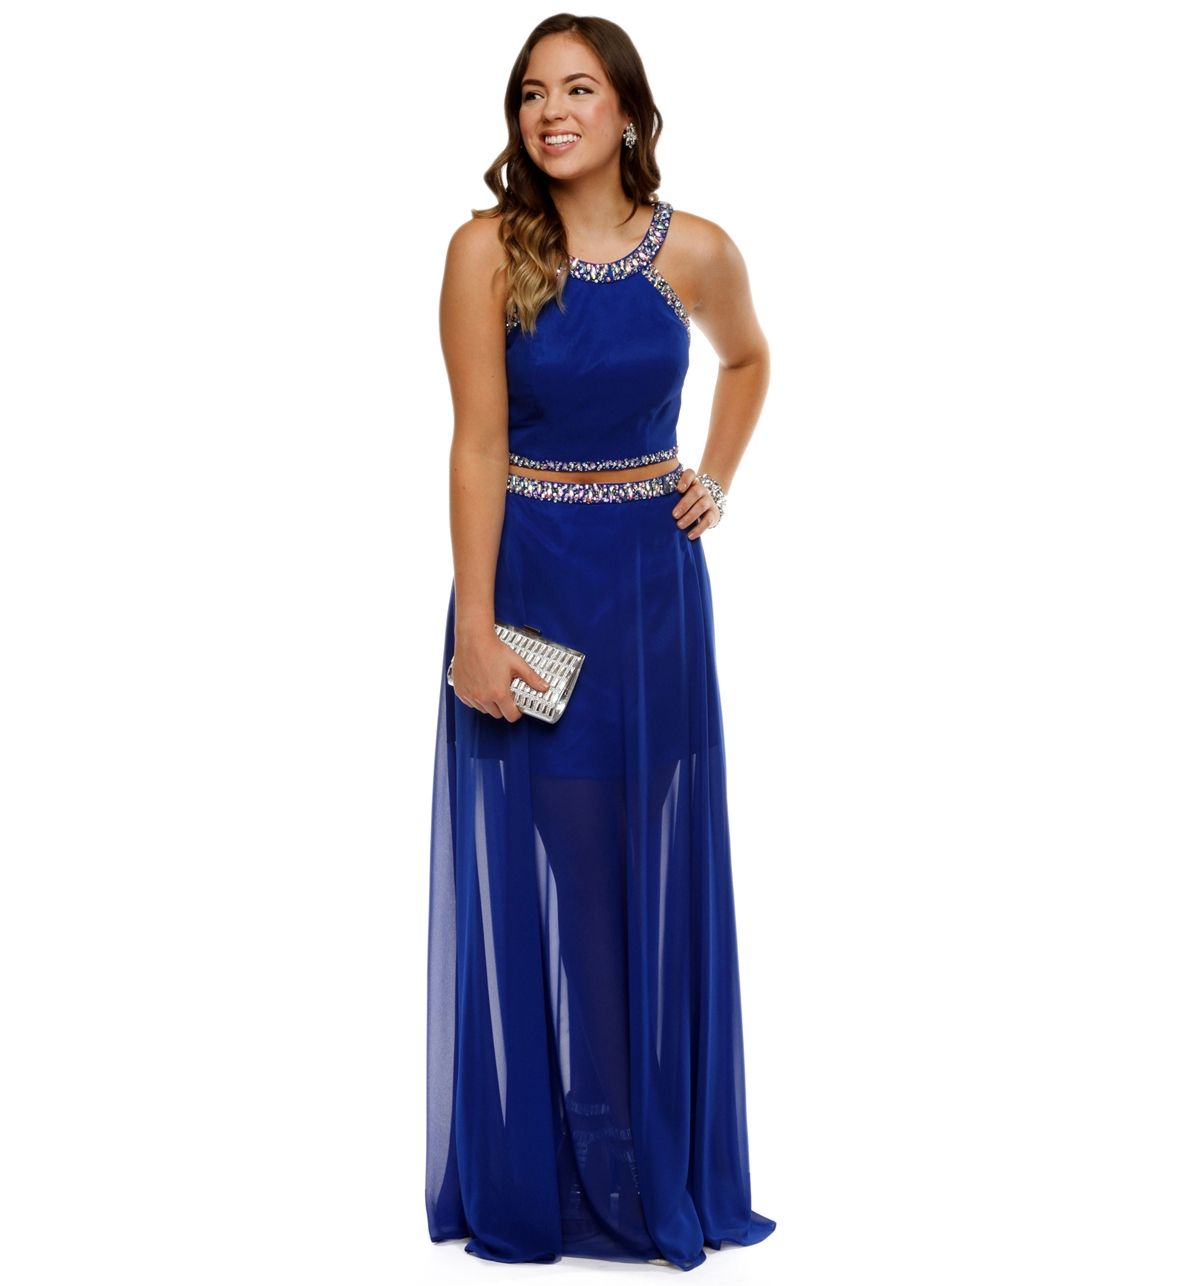 Bree Royal Homecoming Dress | Prom and Dream dress